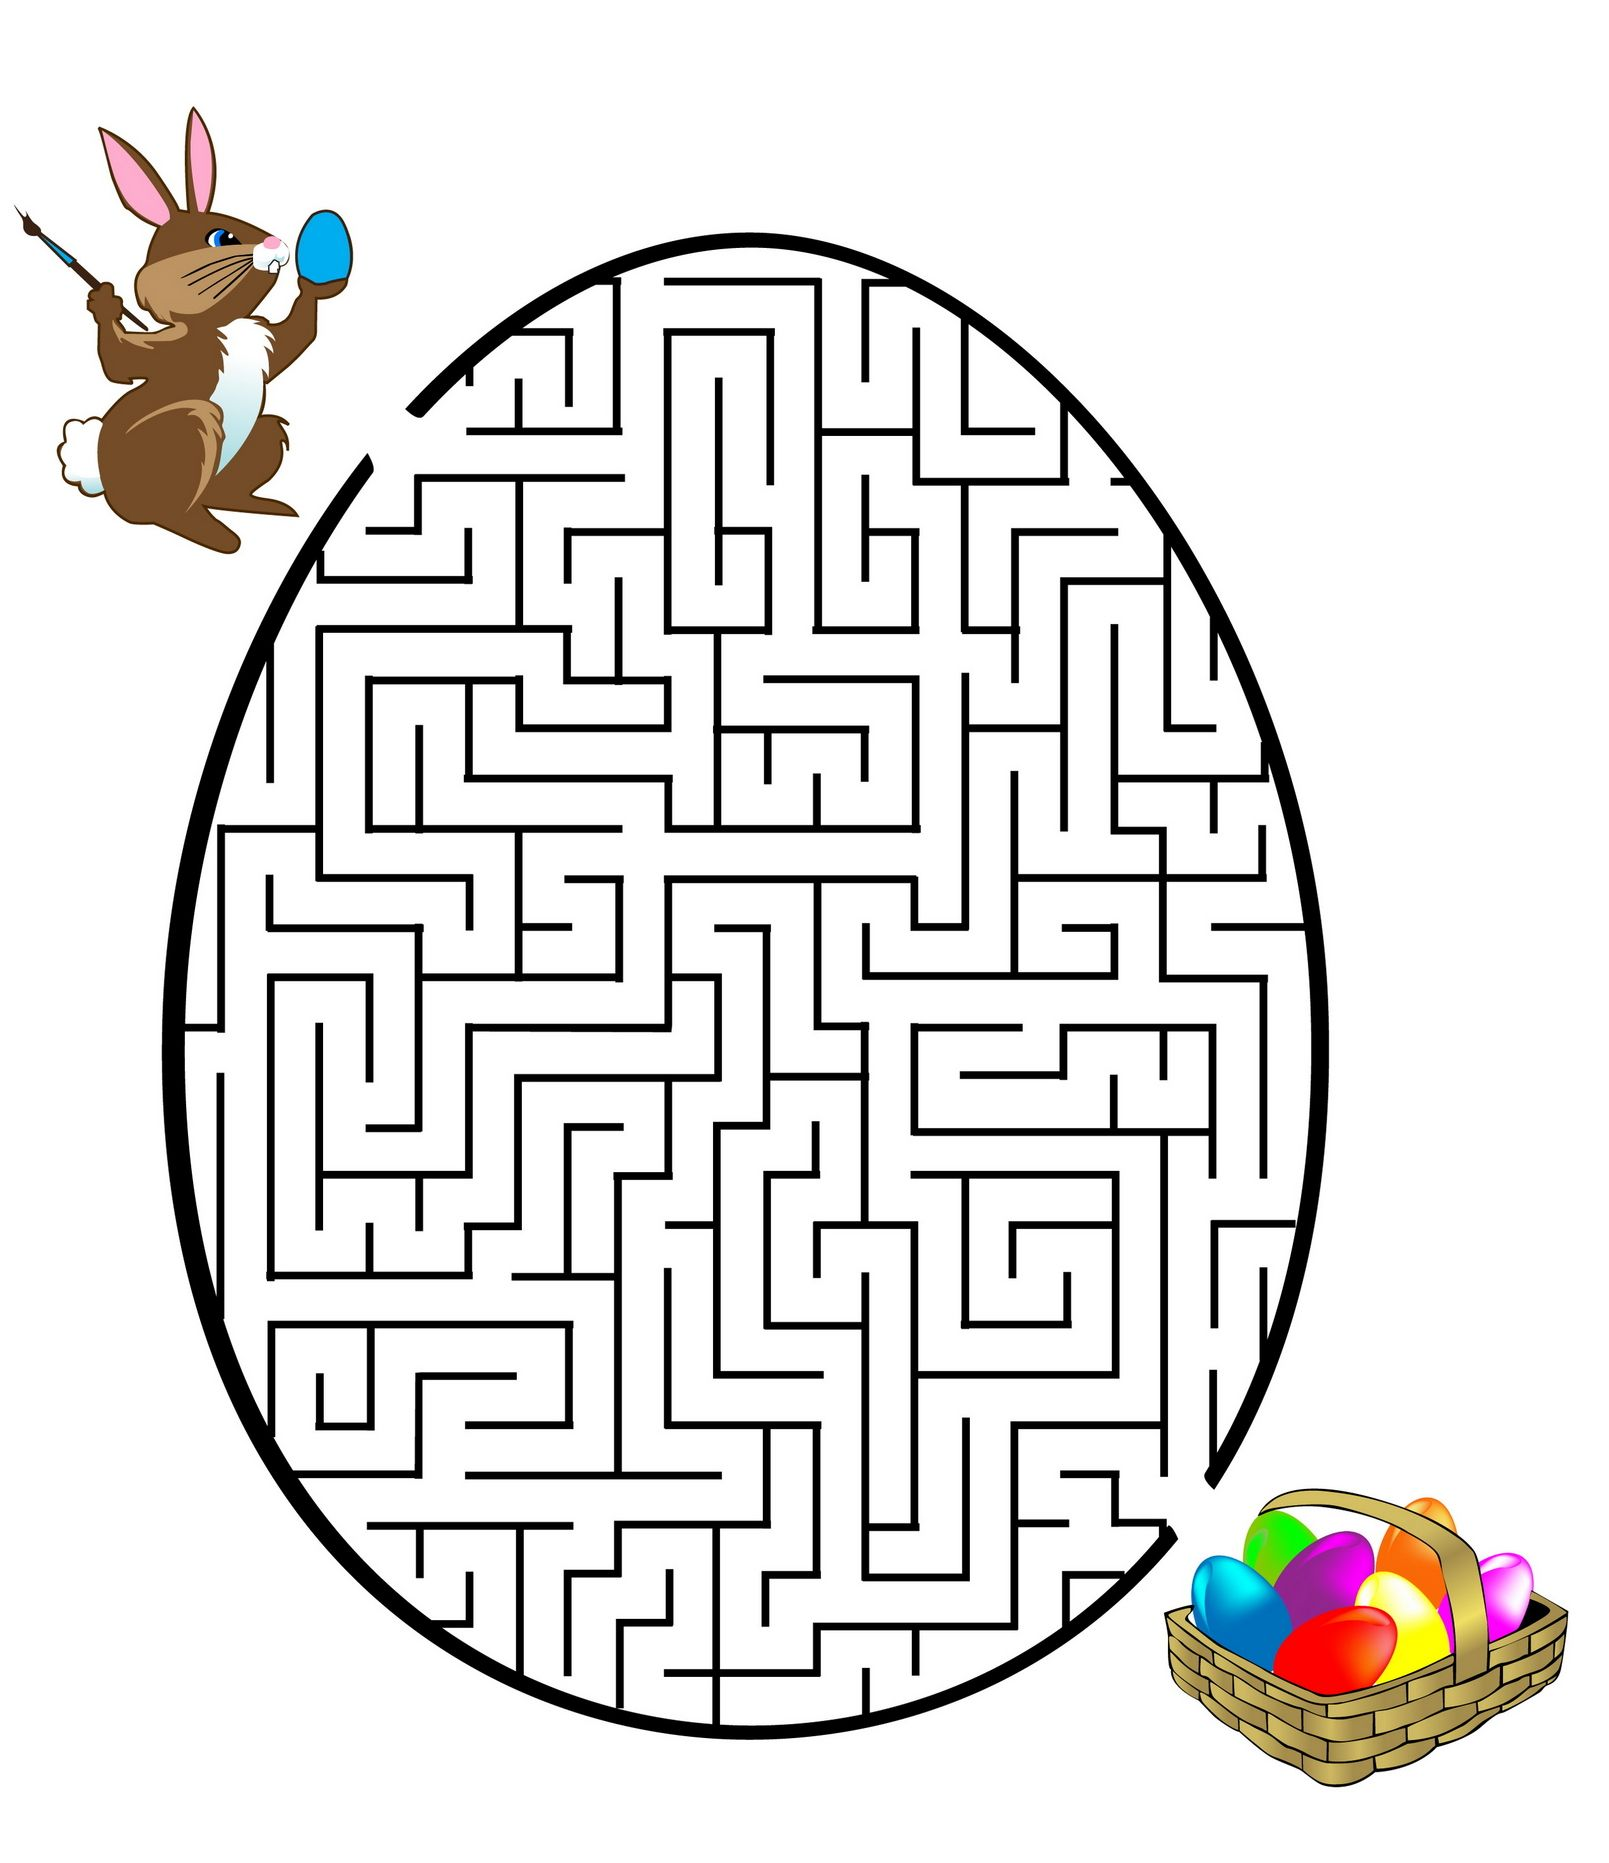 Colouring for kids games - This Free Printable Easter Maze In The Shape Of An Egg Helps Celebrate The Easter Holiday Kids Love Mazes And Printable Easter Mazes Also Help Celebrate